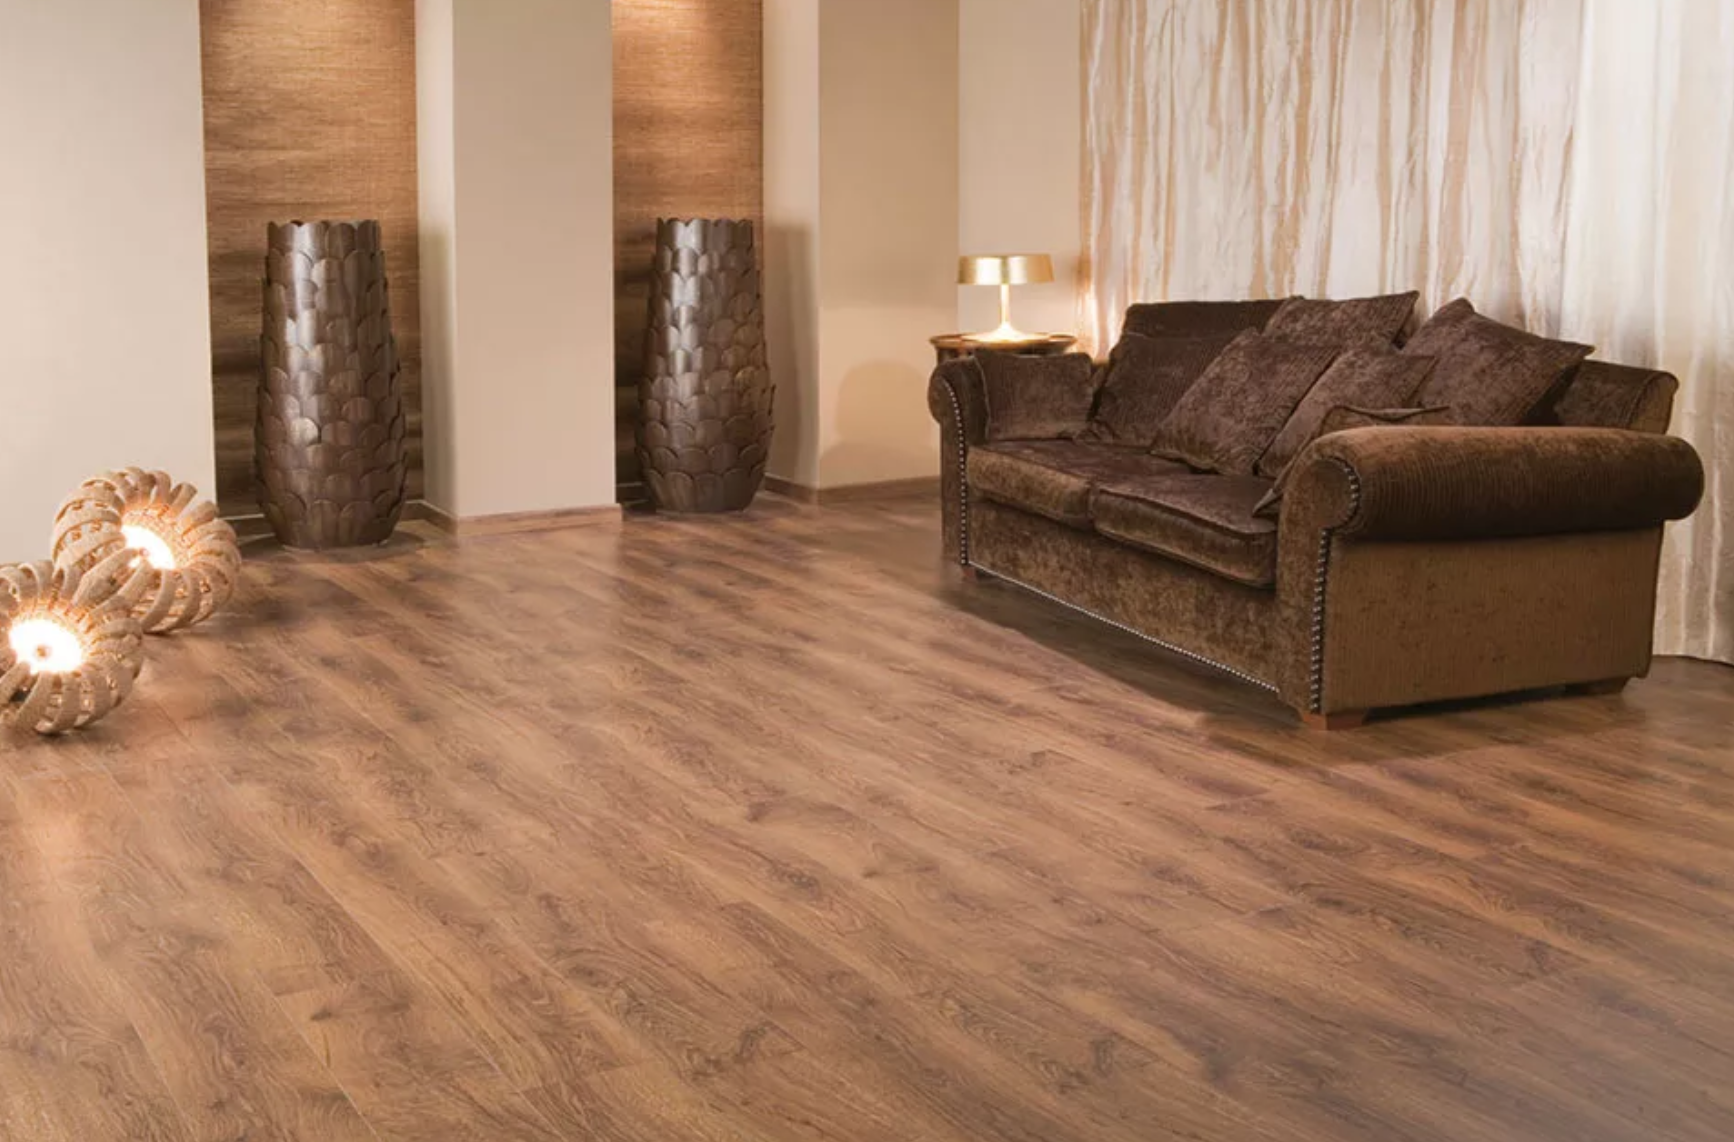 luxury vinyl tiles vs laminate flooring woodandbeyond wood and beyond blog